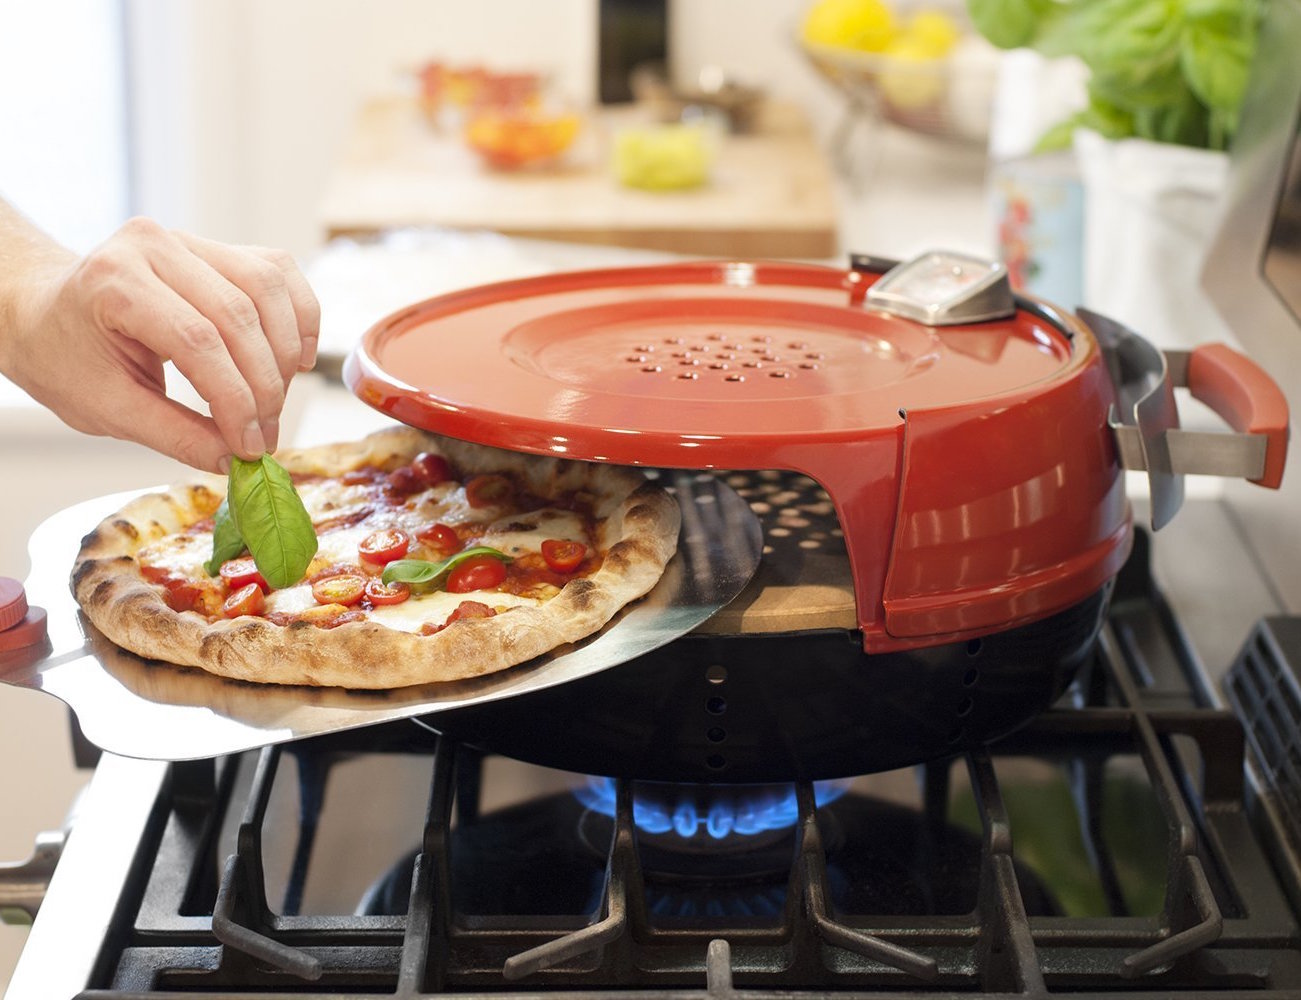 Pizzeria Pronto Stovetop Oven by Pizzacraft